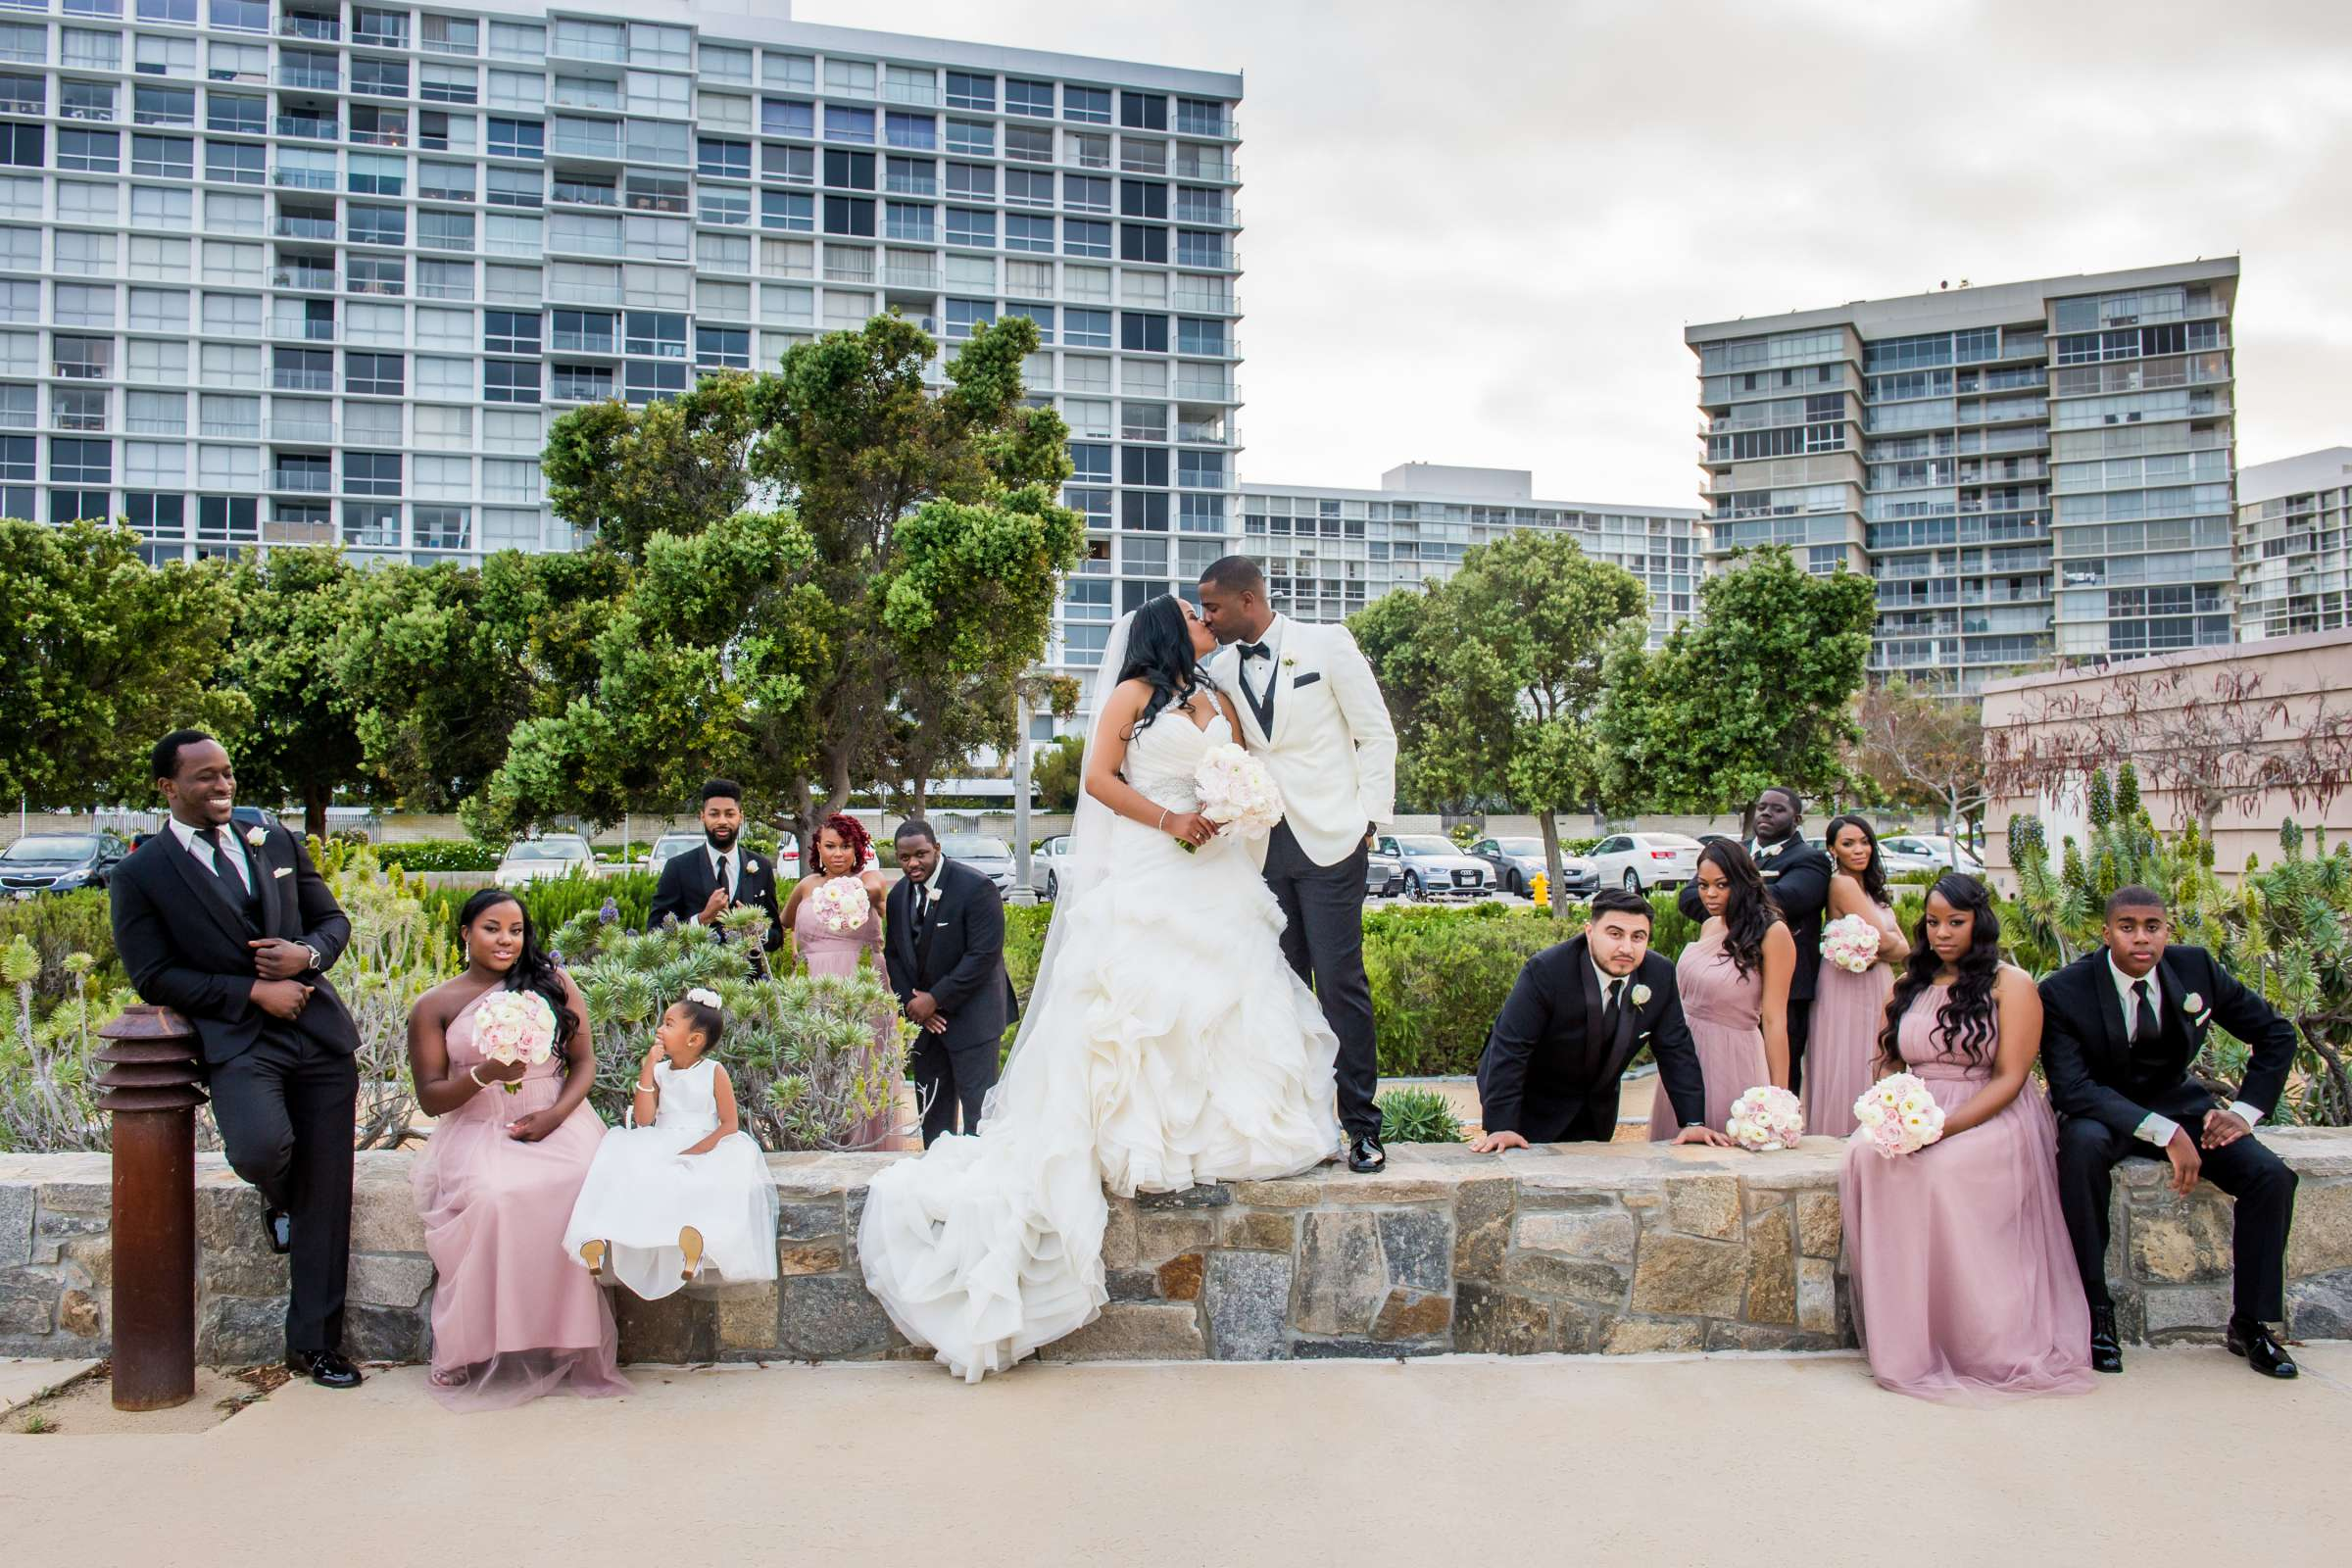 Coronado Community Center Wedding coordinated by First Comes Love Weddings & Events, Nikia and Charles Wedding Photo #7 by True Photography